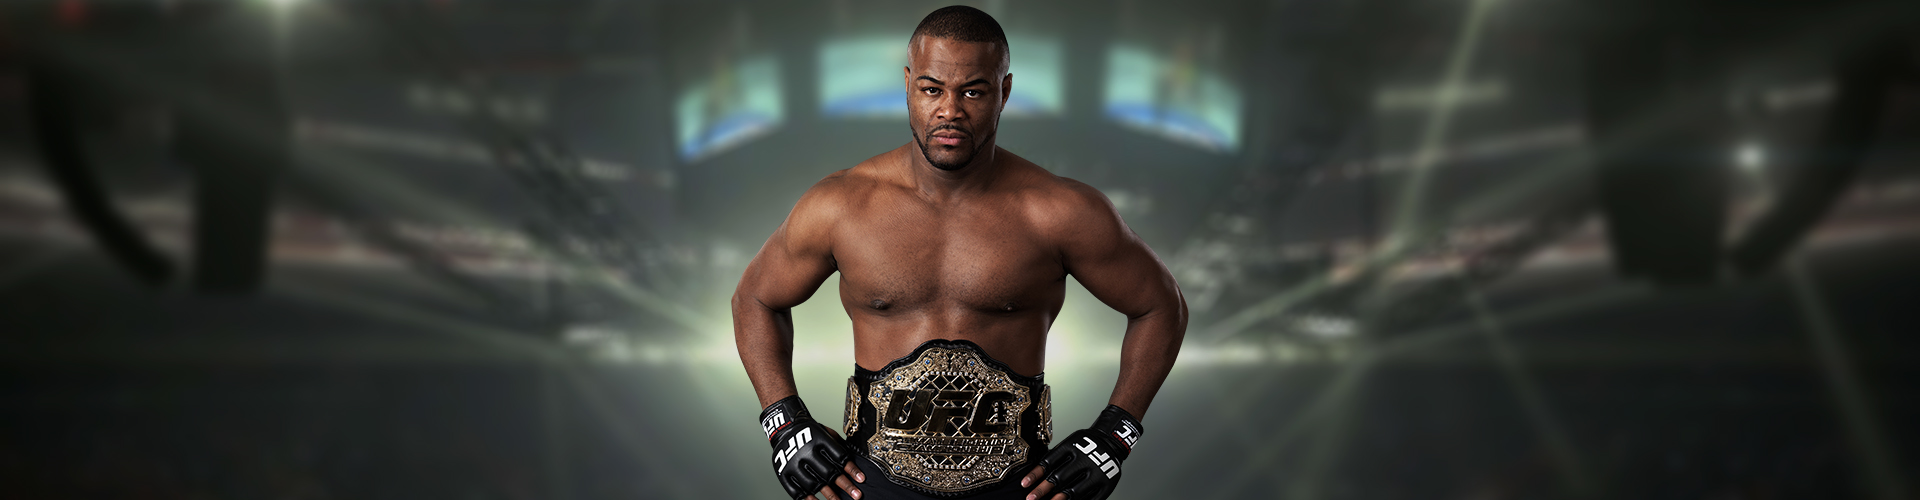 Rashad Evans with championship belt and hands on hips